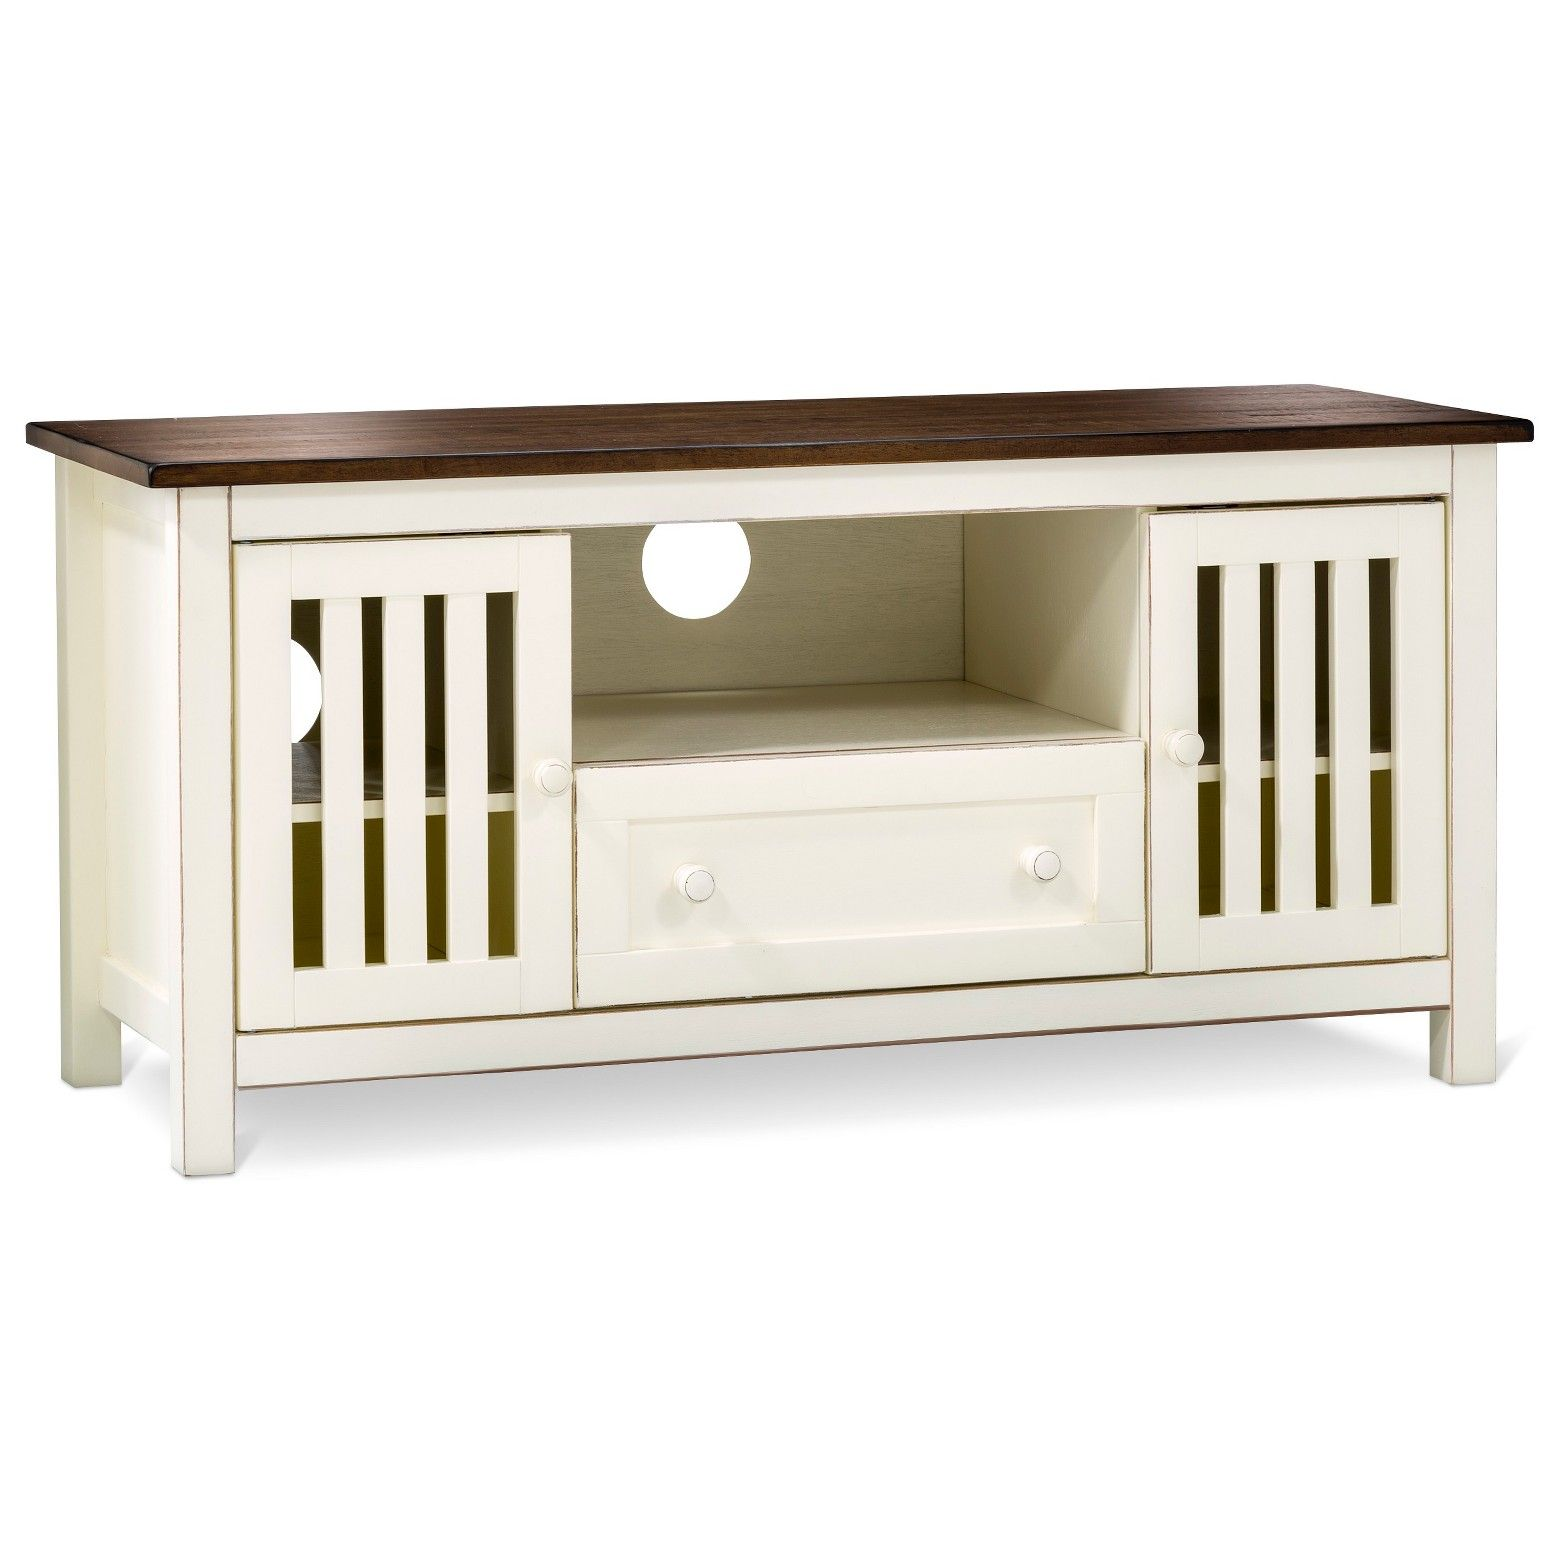 The Davern Cottage TV Stand Off White is a media storage